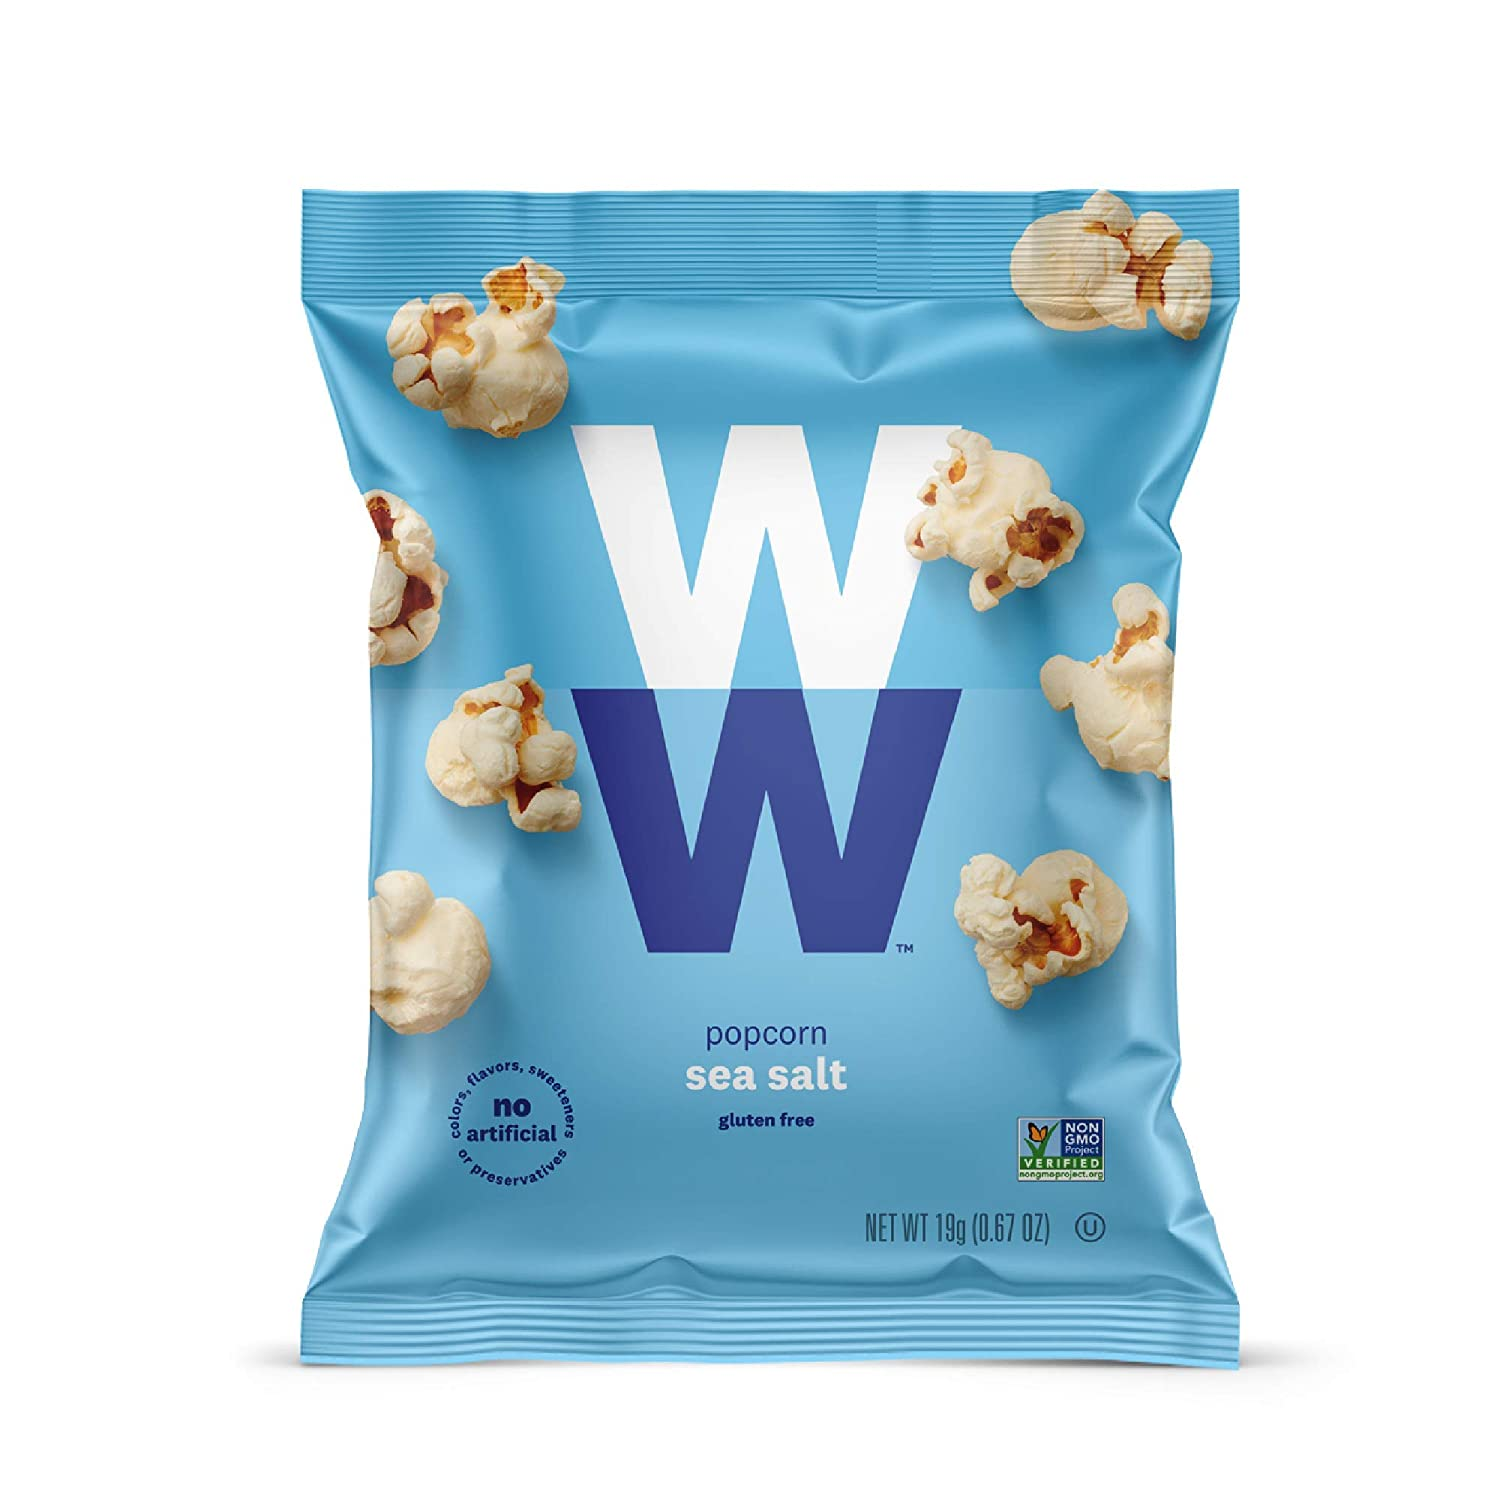 WW Sea Salt Max 54% OFF Popcorn - Gluten-free SmartPoints 2 Manufacturer direct delivery Total 12 Bags